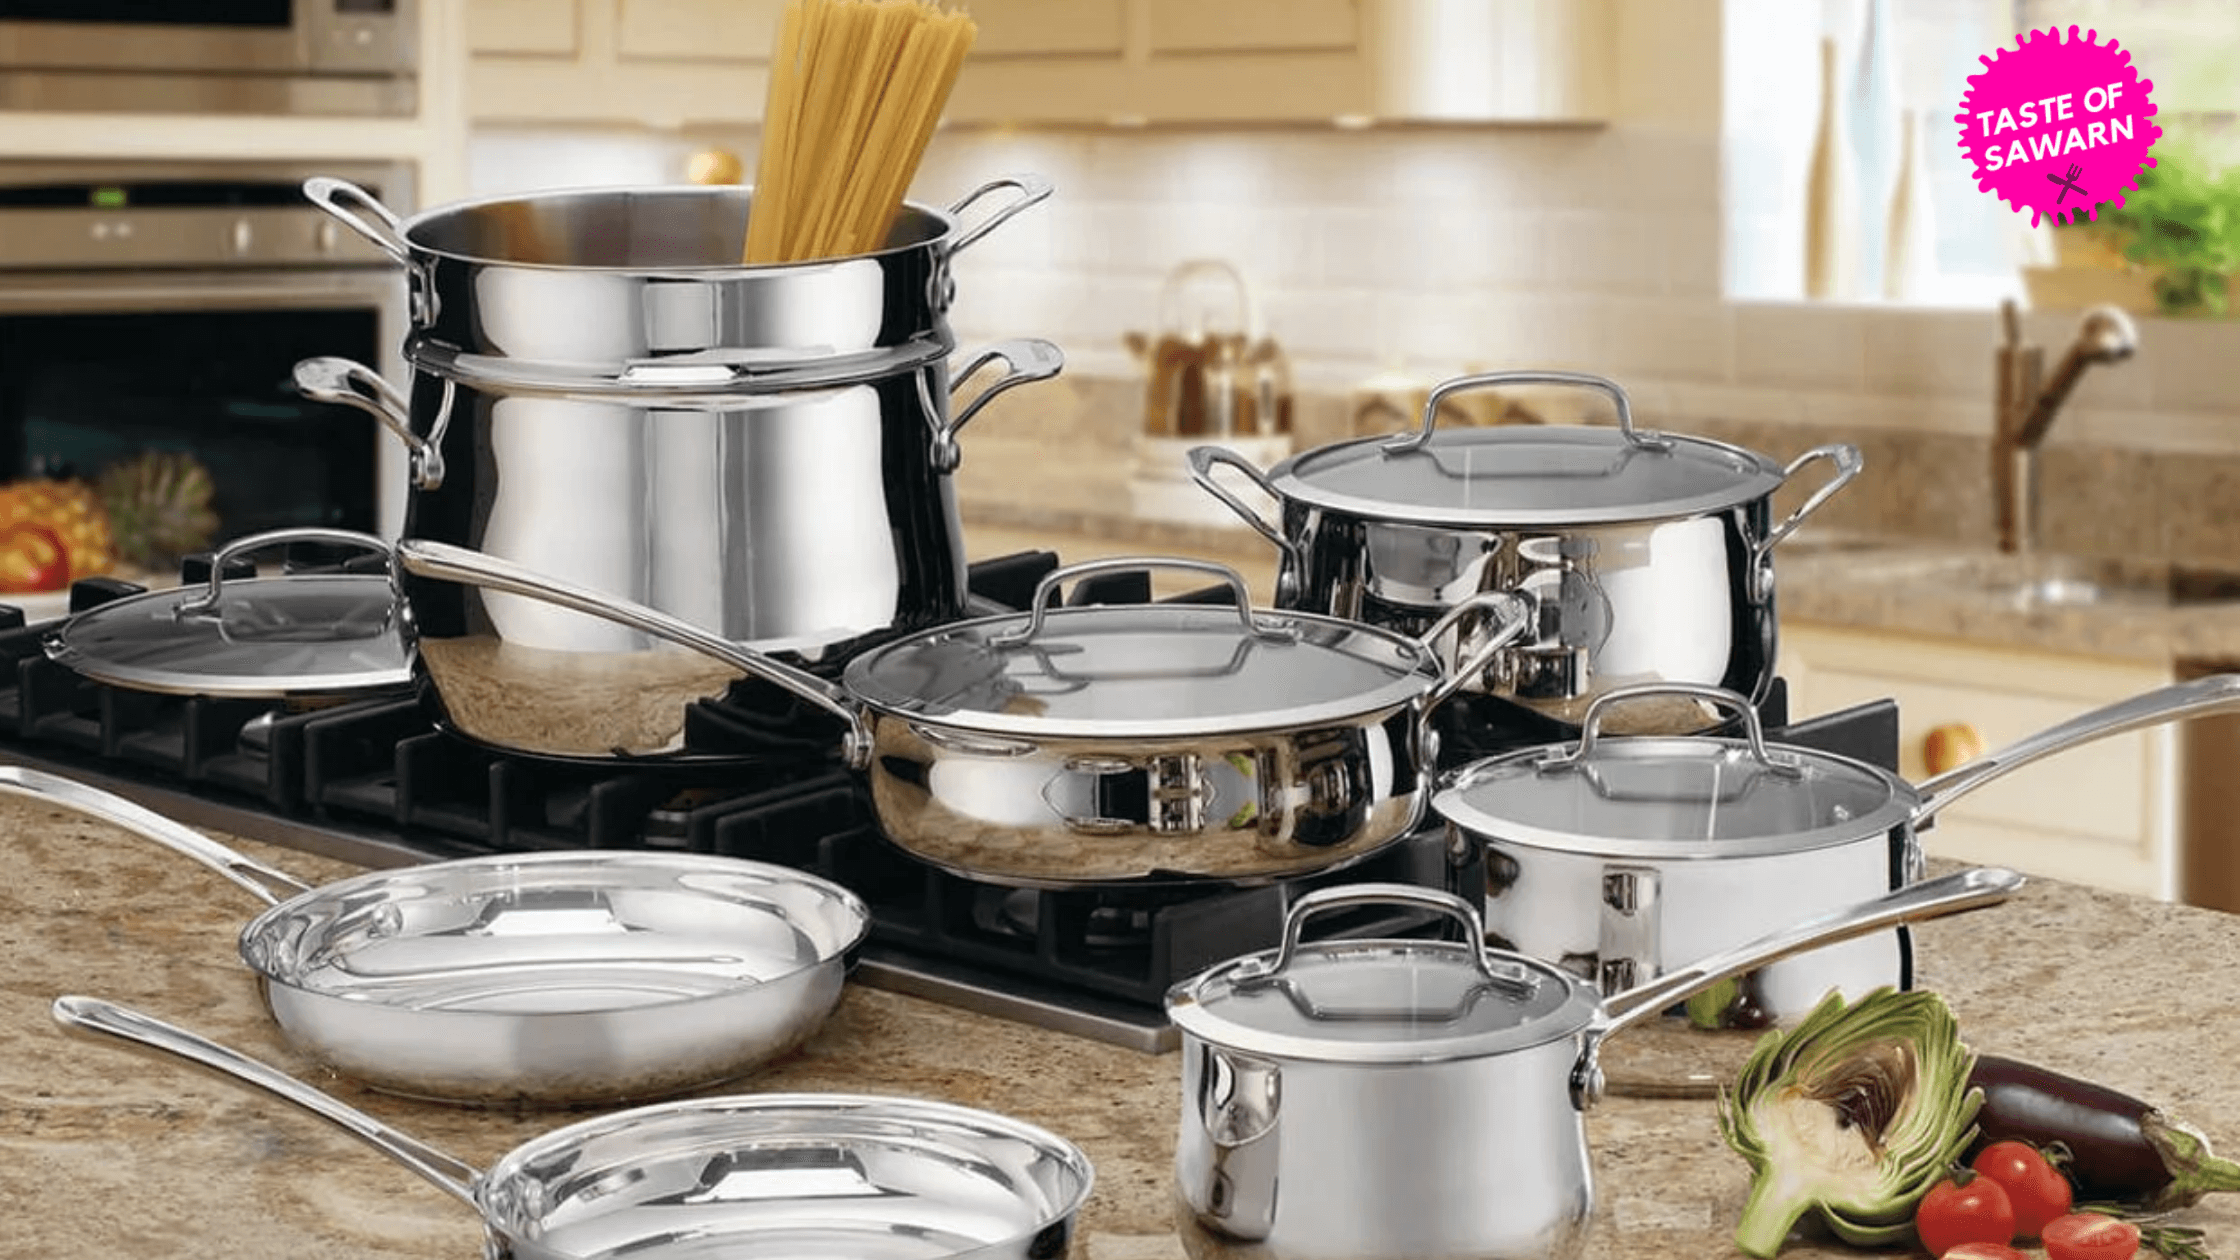 Best Stainless Steel Cookware For Your Kitchen 2020